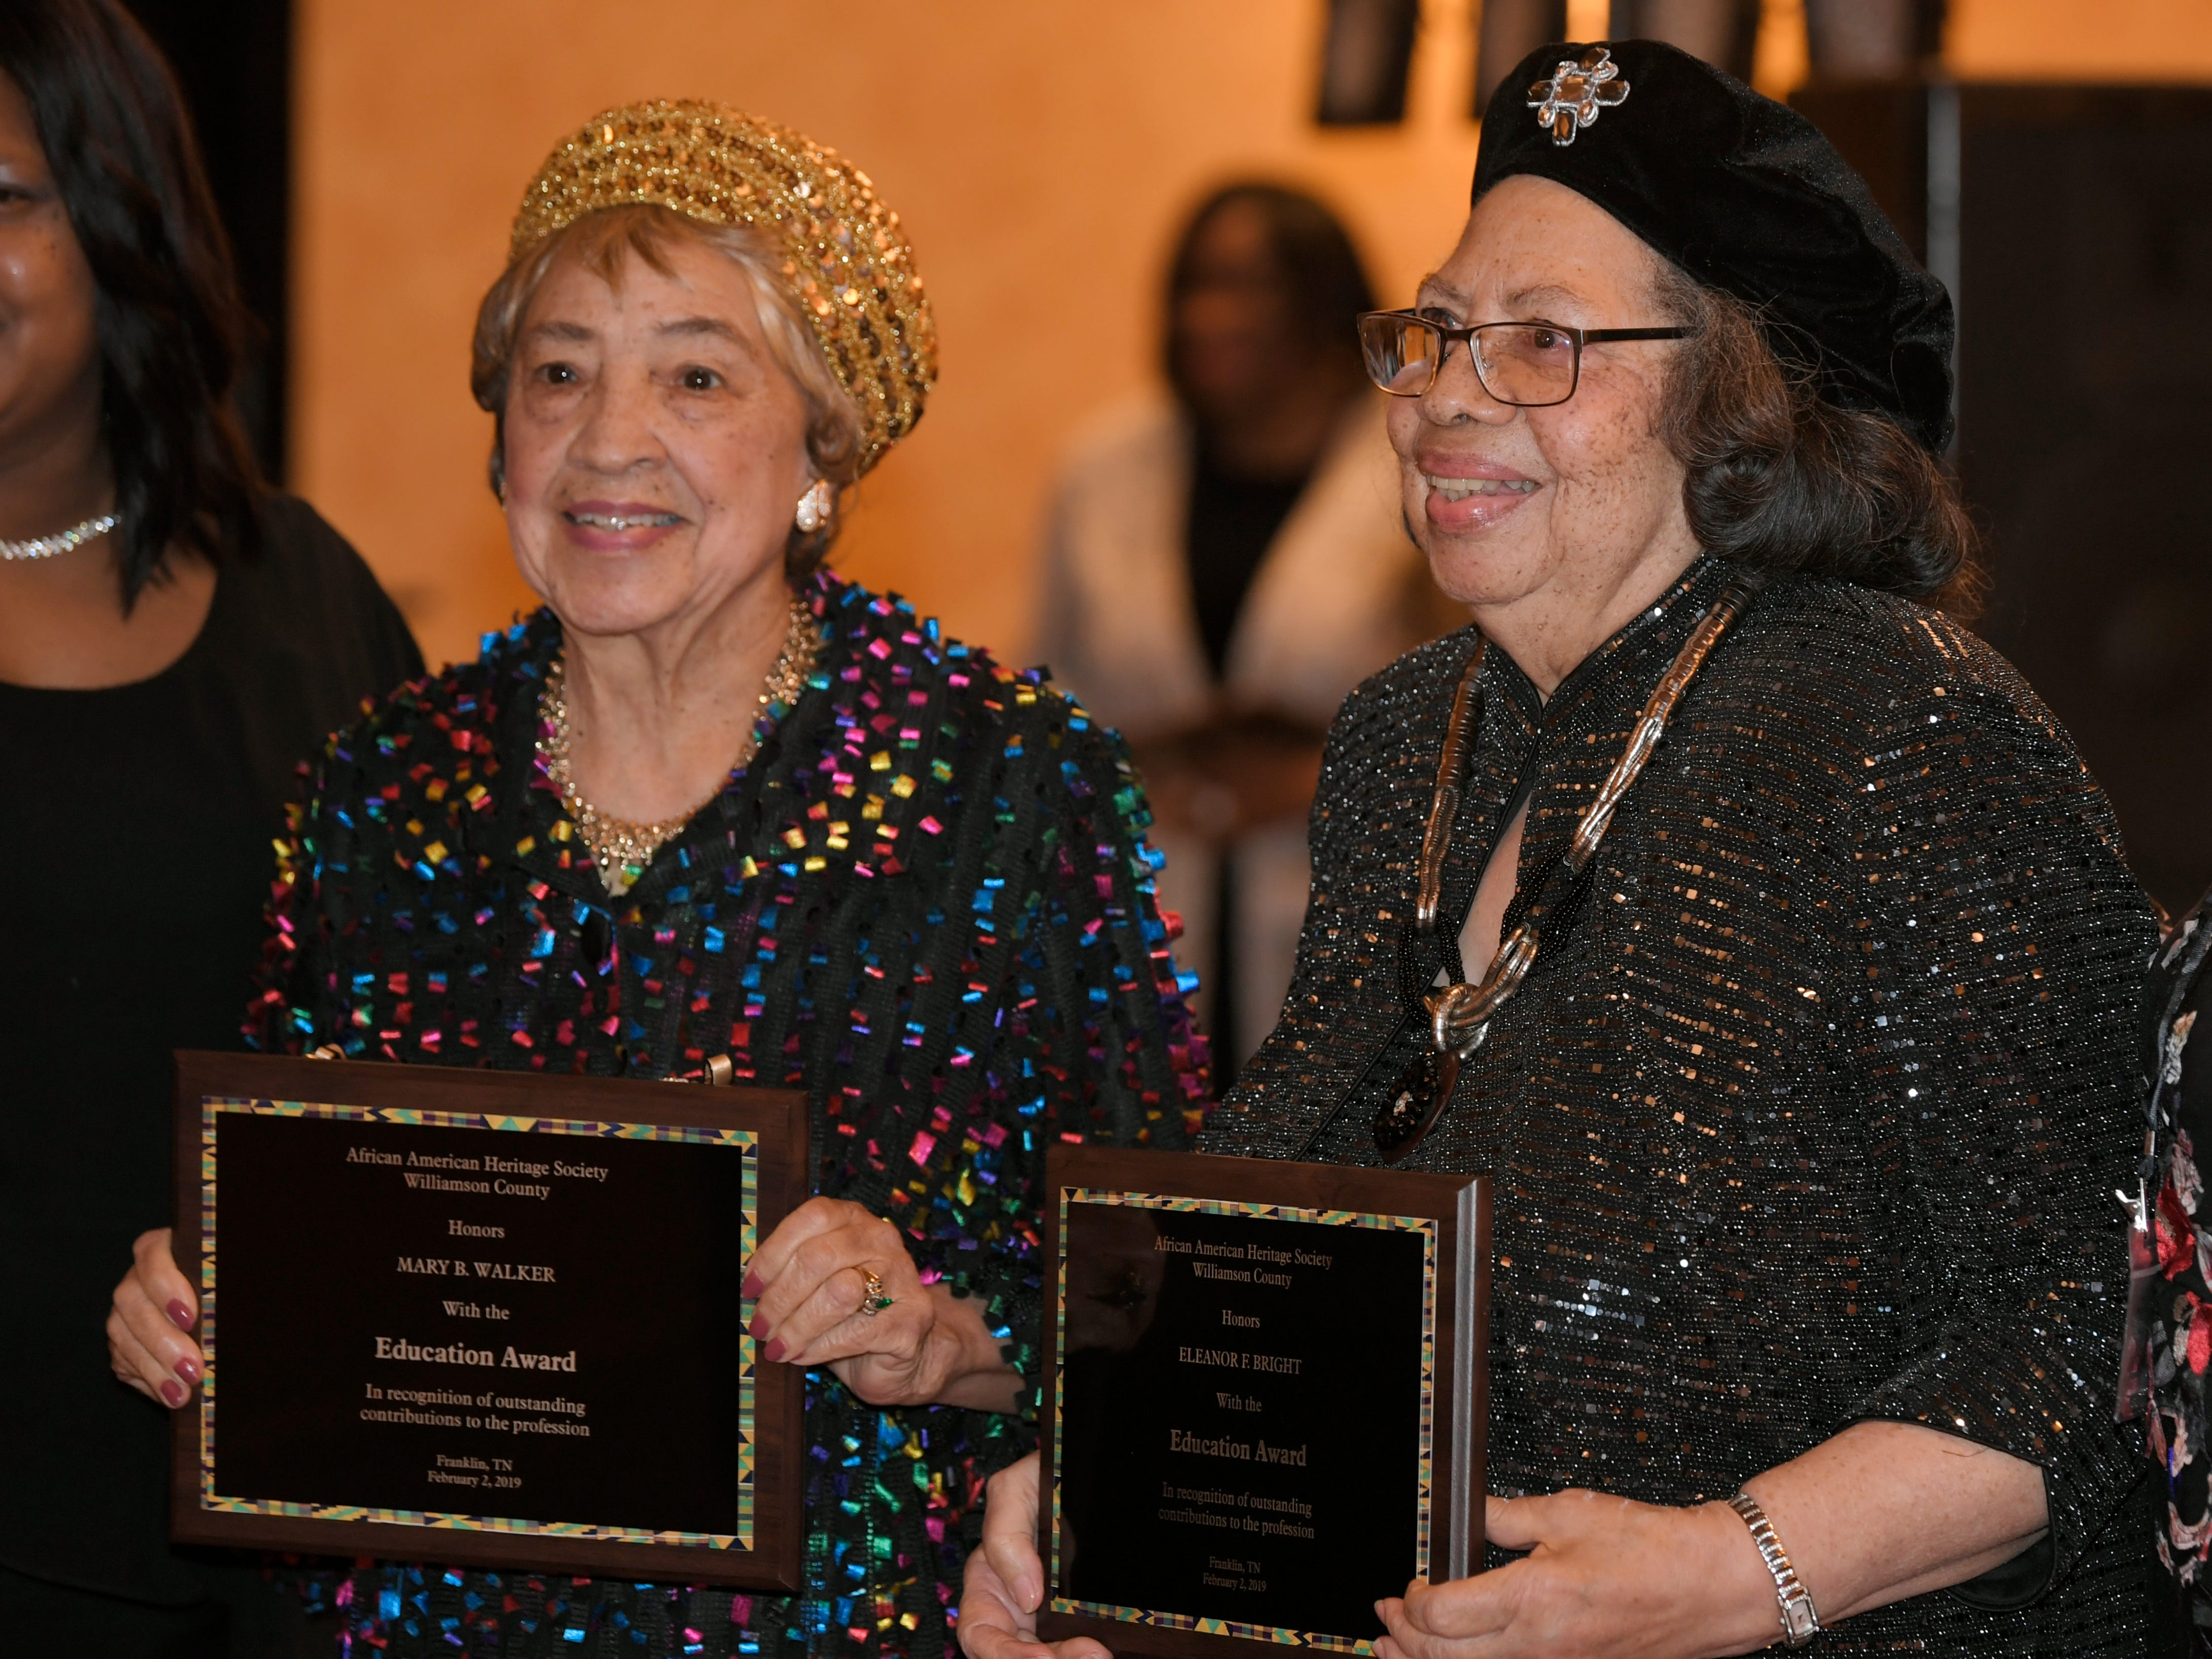 Sisters Mary Walker and Eleanor Bright were honored at the African American Heritage Society's 18th Annual Black Tie Affair at the Embassy Suites in Franklin on Sat., Feb. 2, 2019.